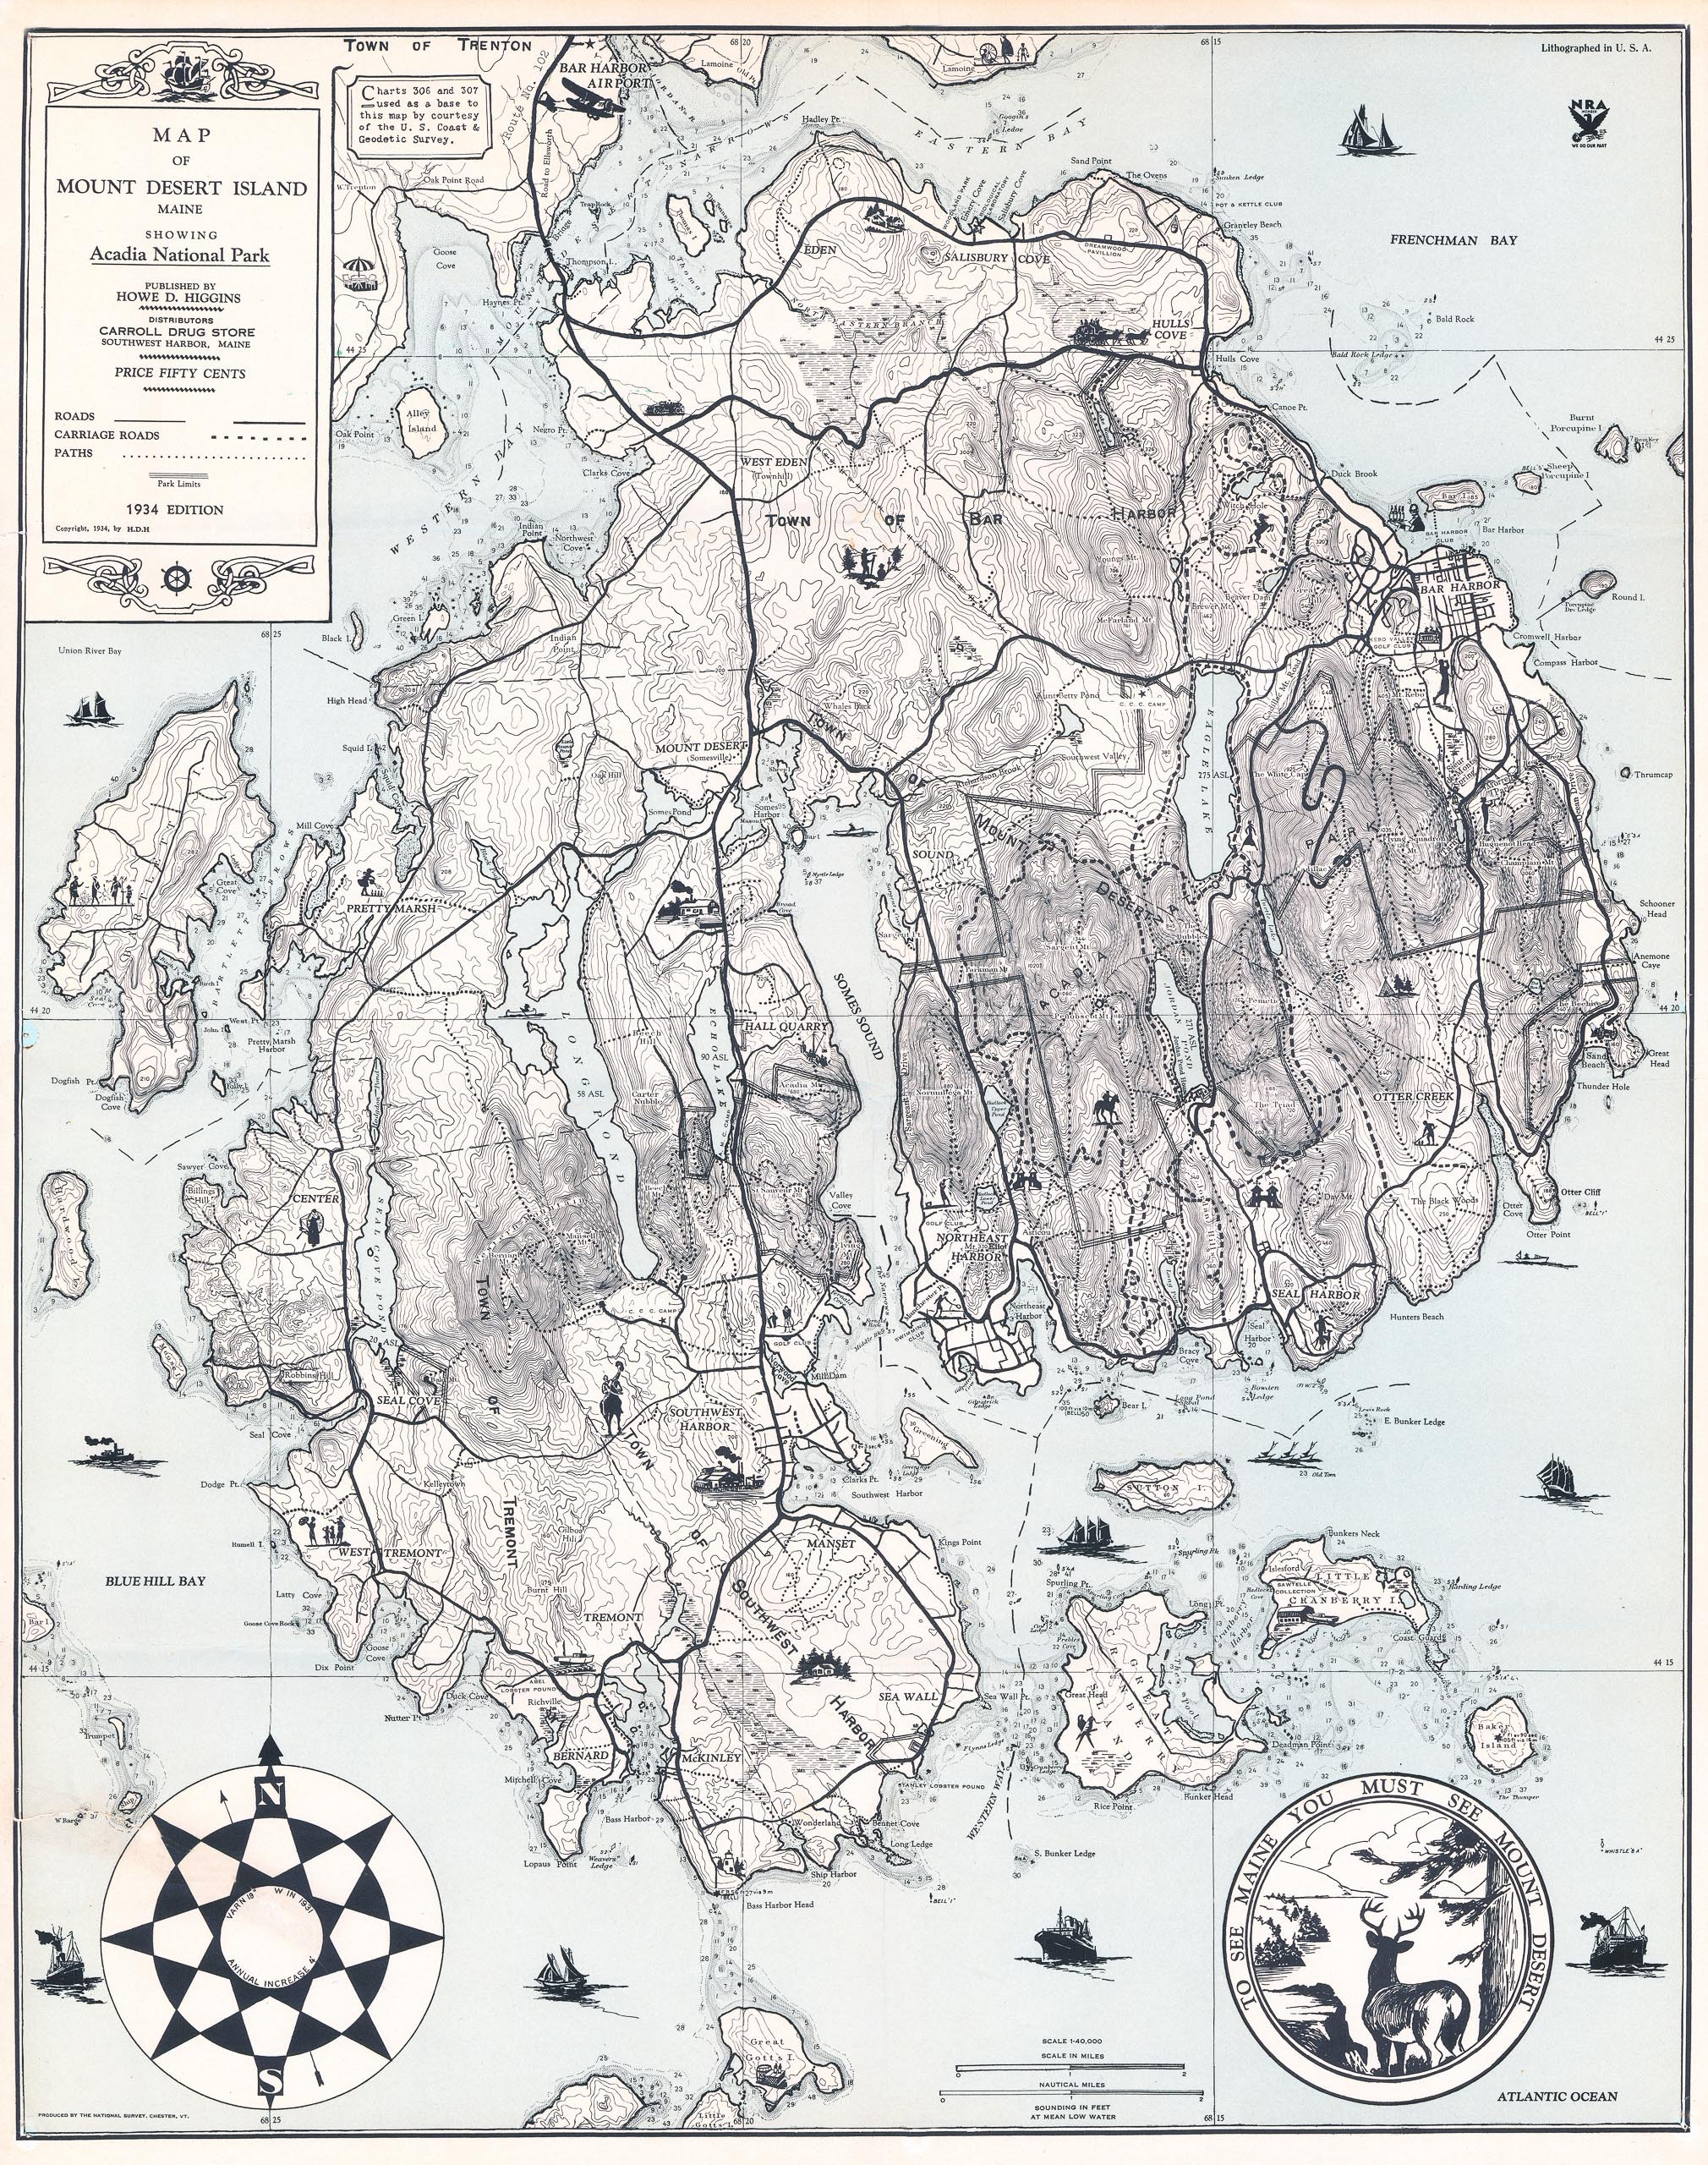 1934 Map of Mount Dessert Island, Maine, Showing Acadia National Park